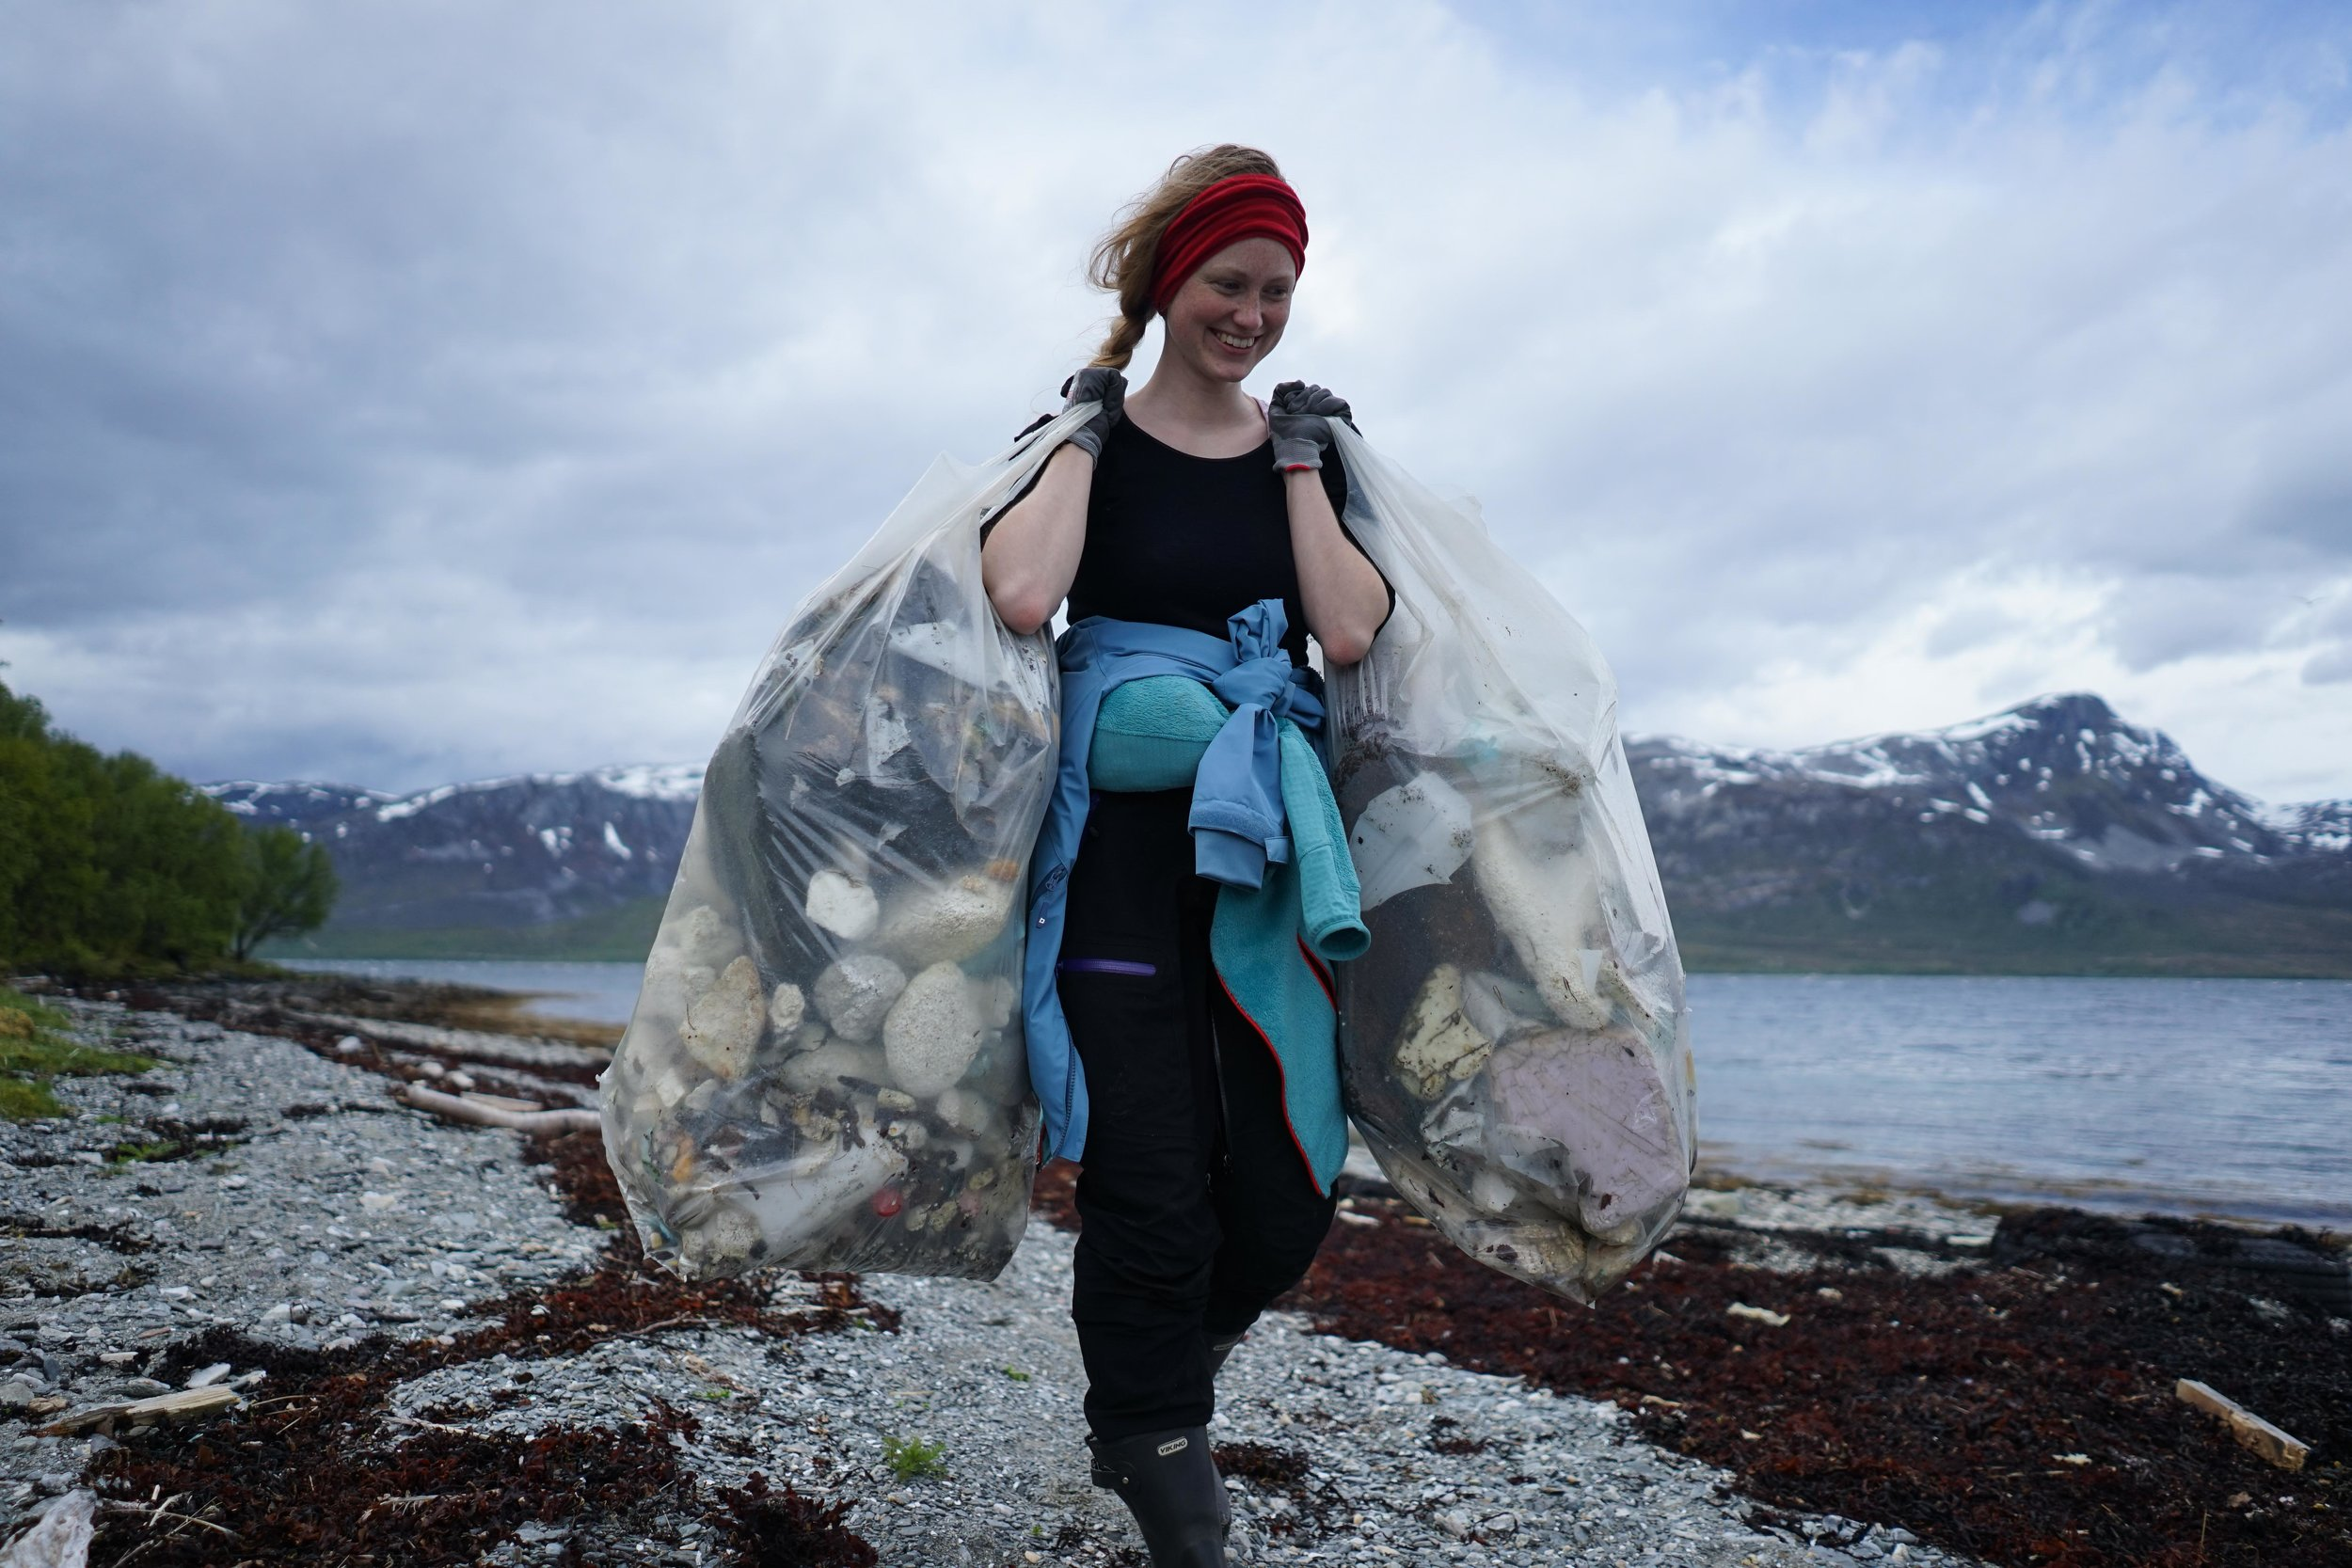 Marika Andersen, board member and project manager, cleaning the island of Nipøya up. Photographer: Jonas Legernes